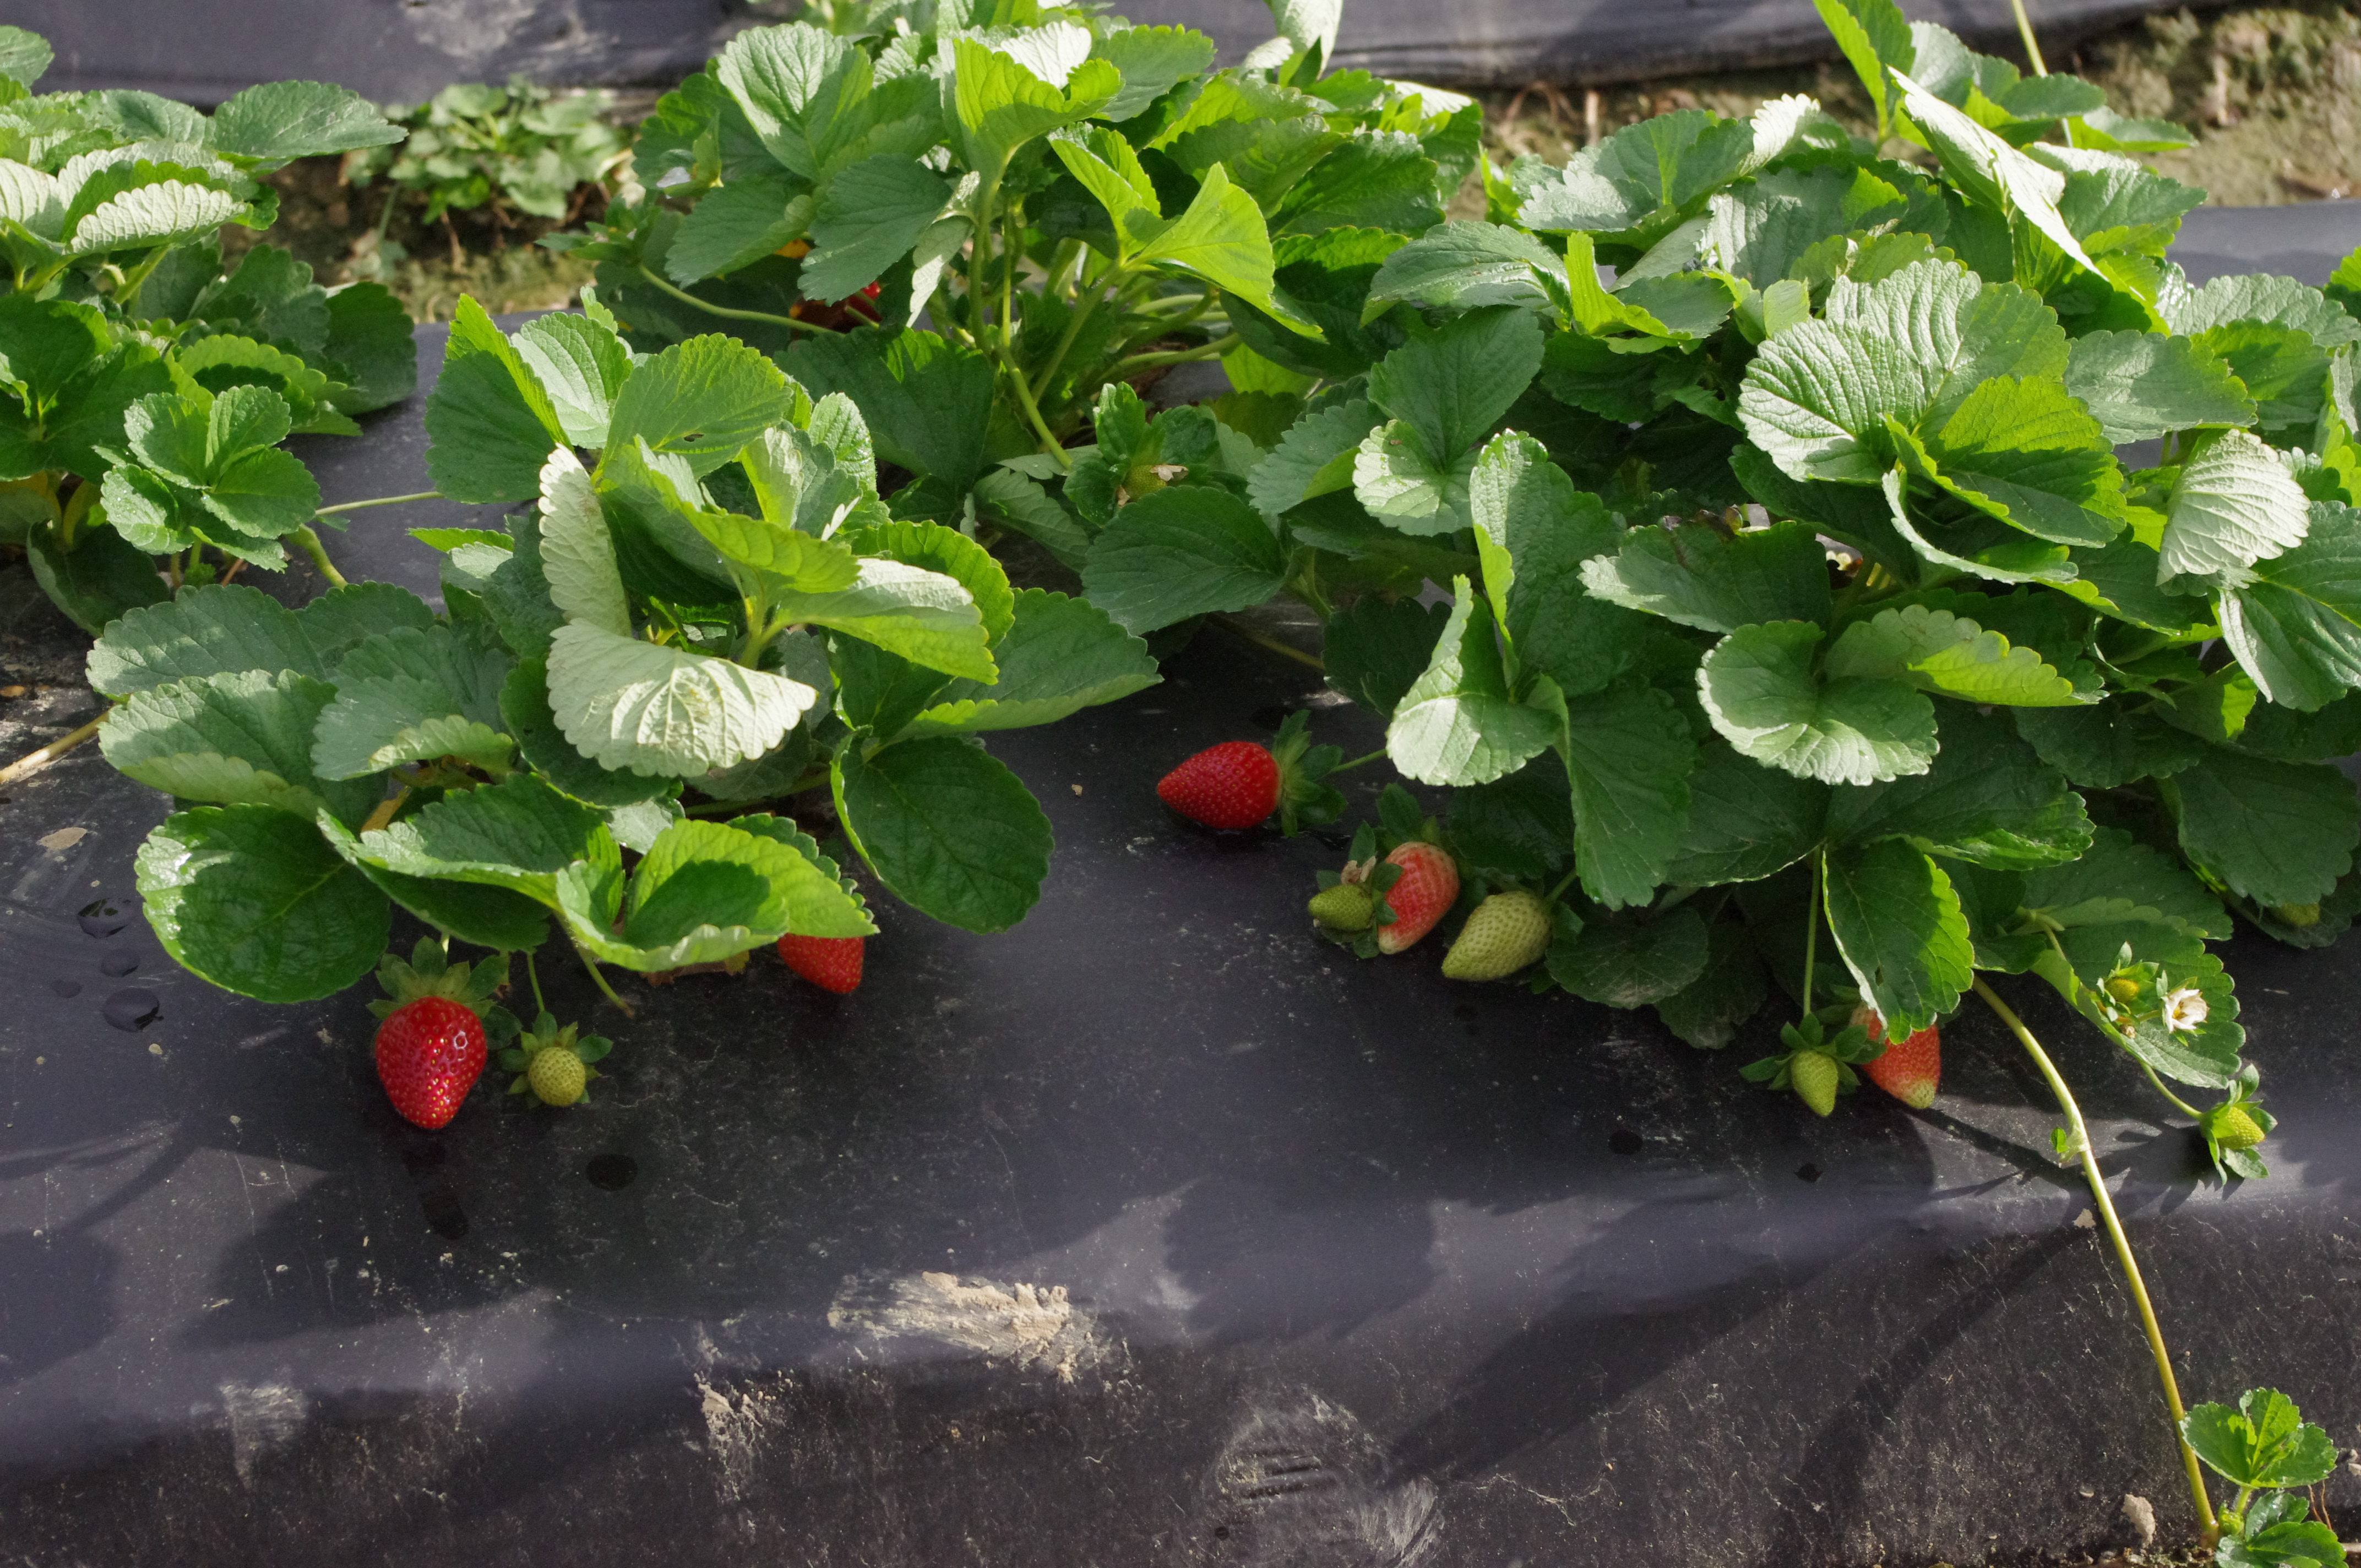 strawberry on plastic mulch.jpg thumbnail